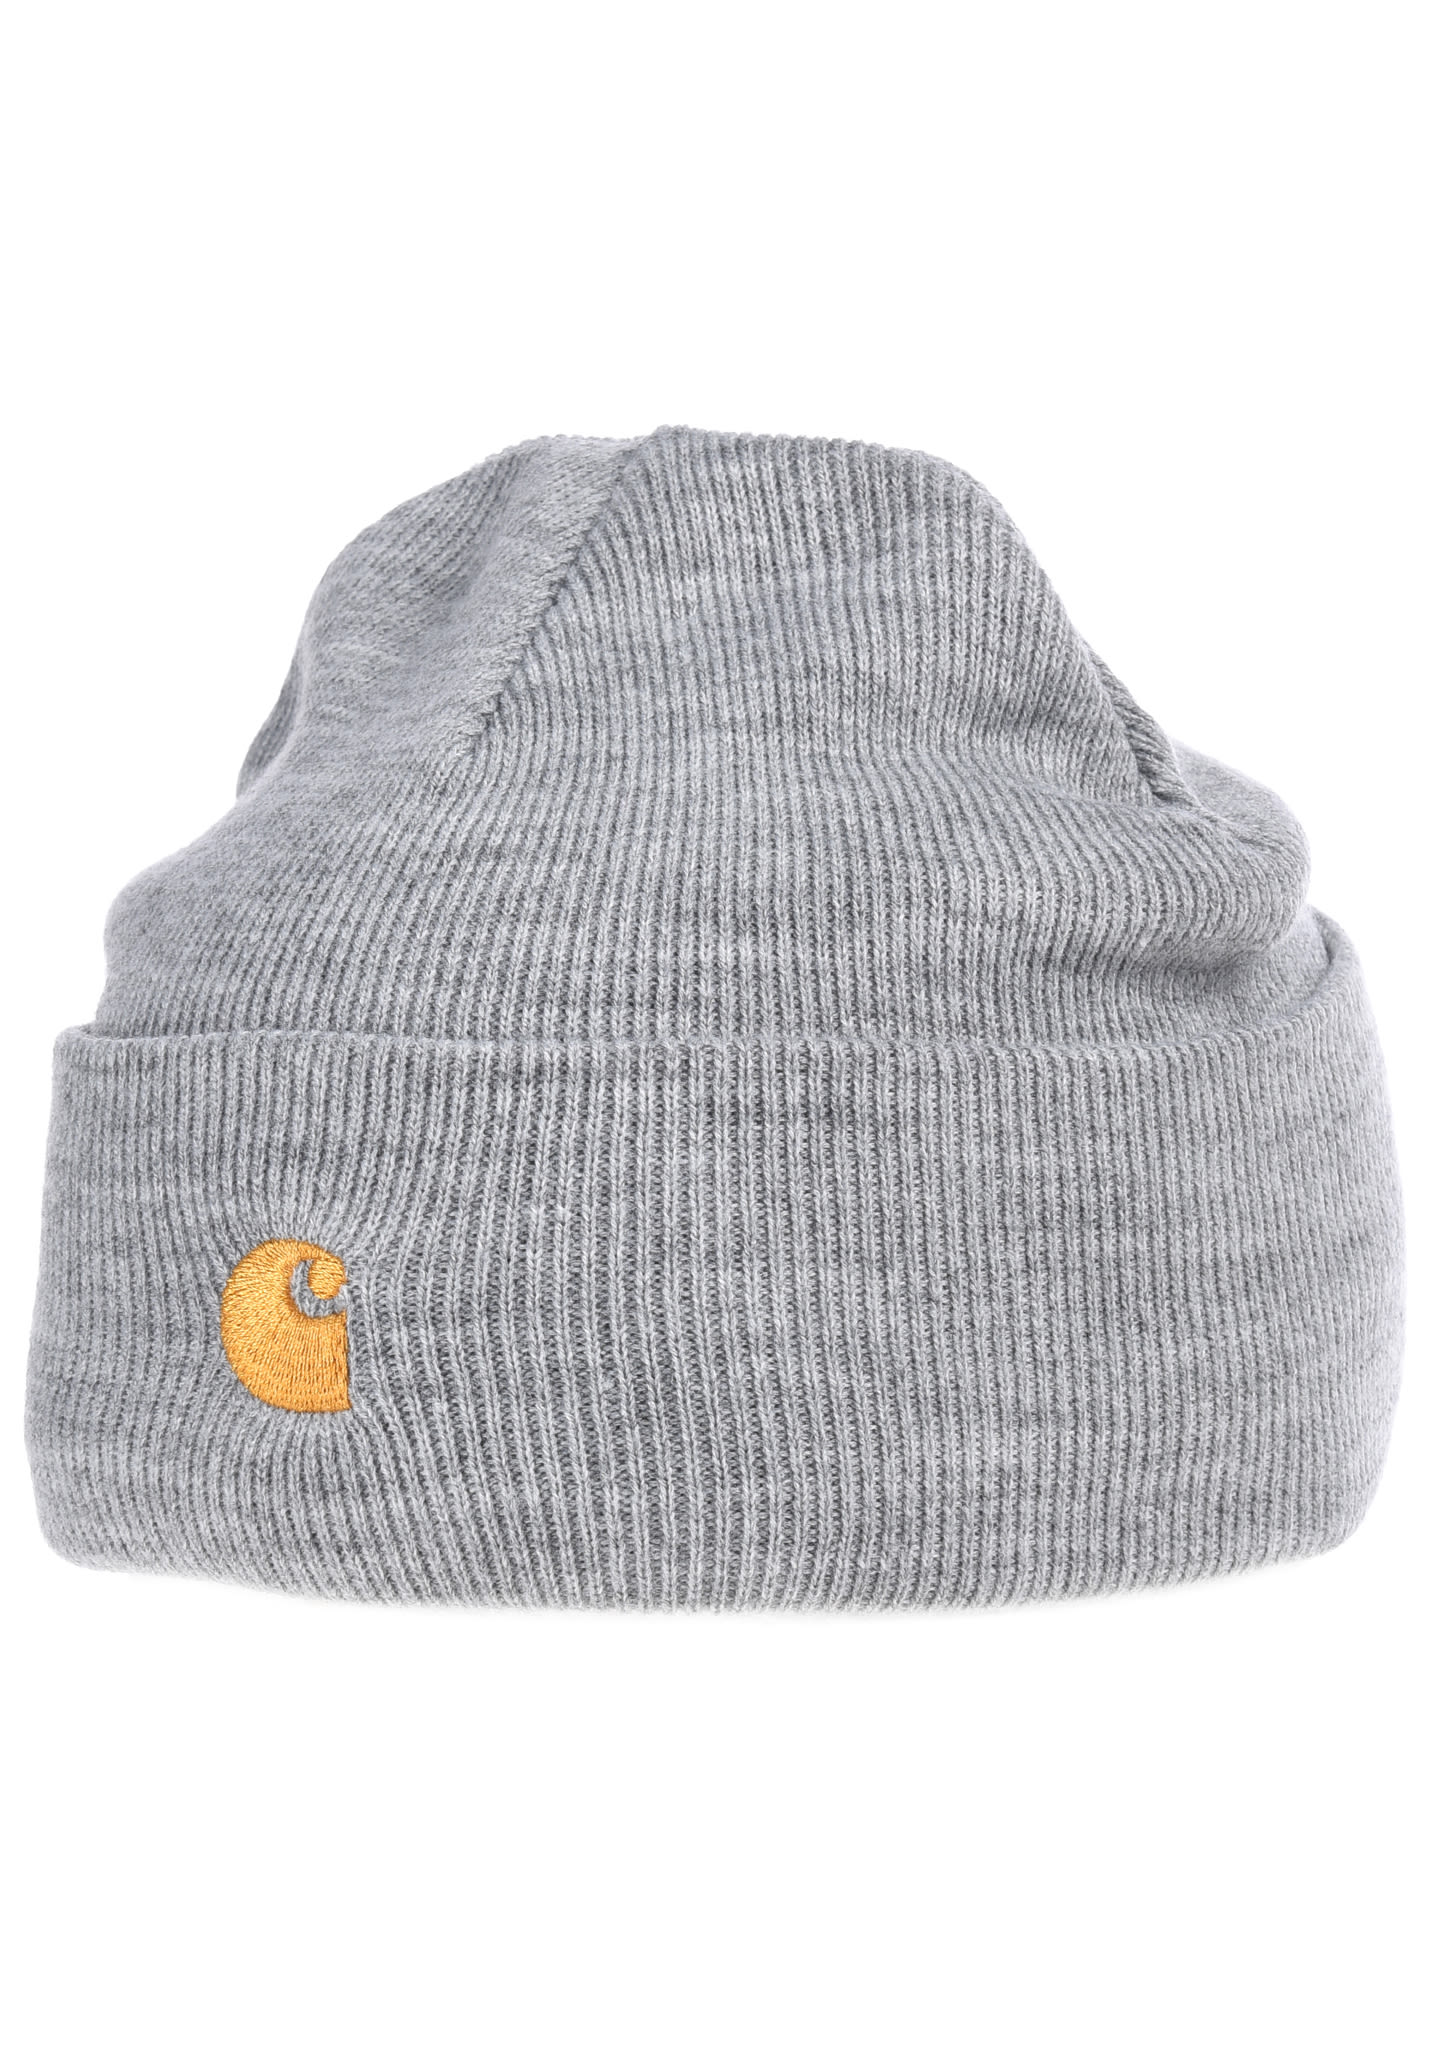 3d0f4413a8dc0 carhartt WIP Chase - Beanie - Grey - Planet Sports